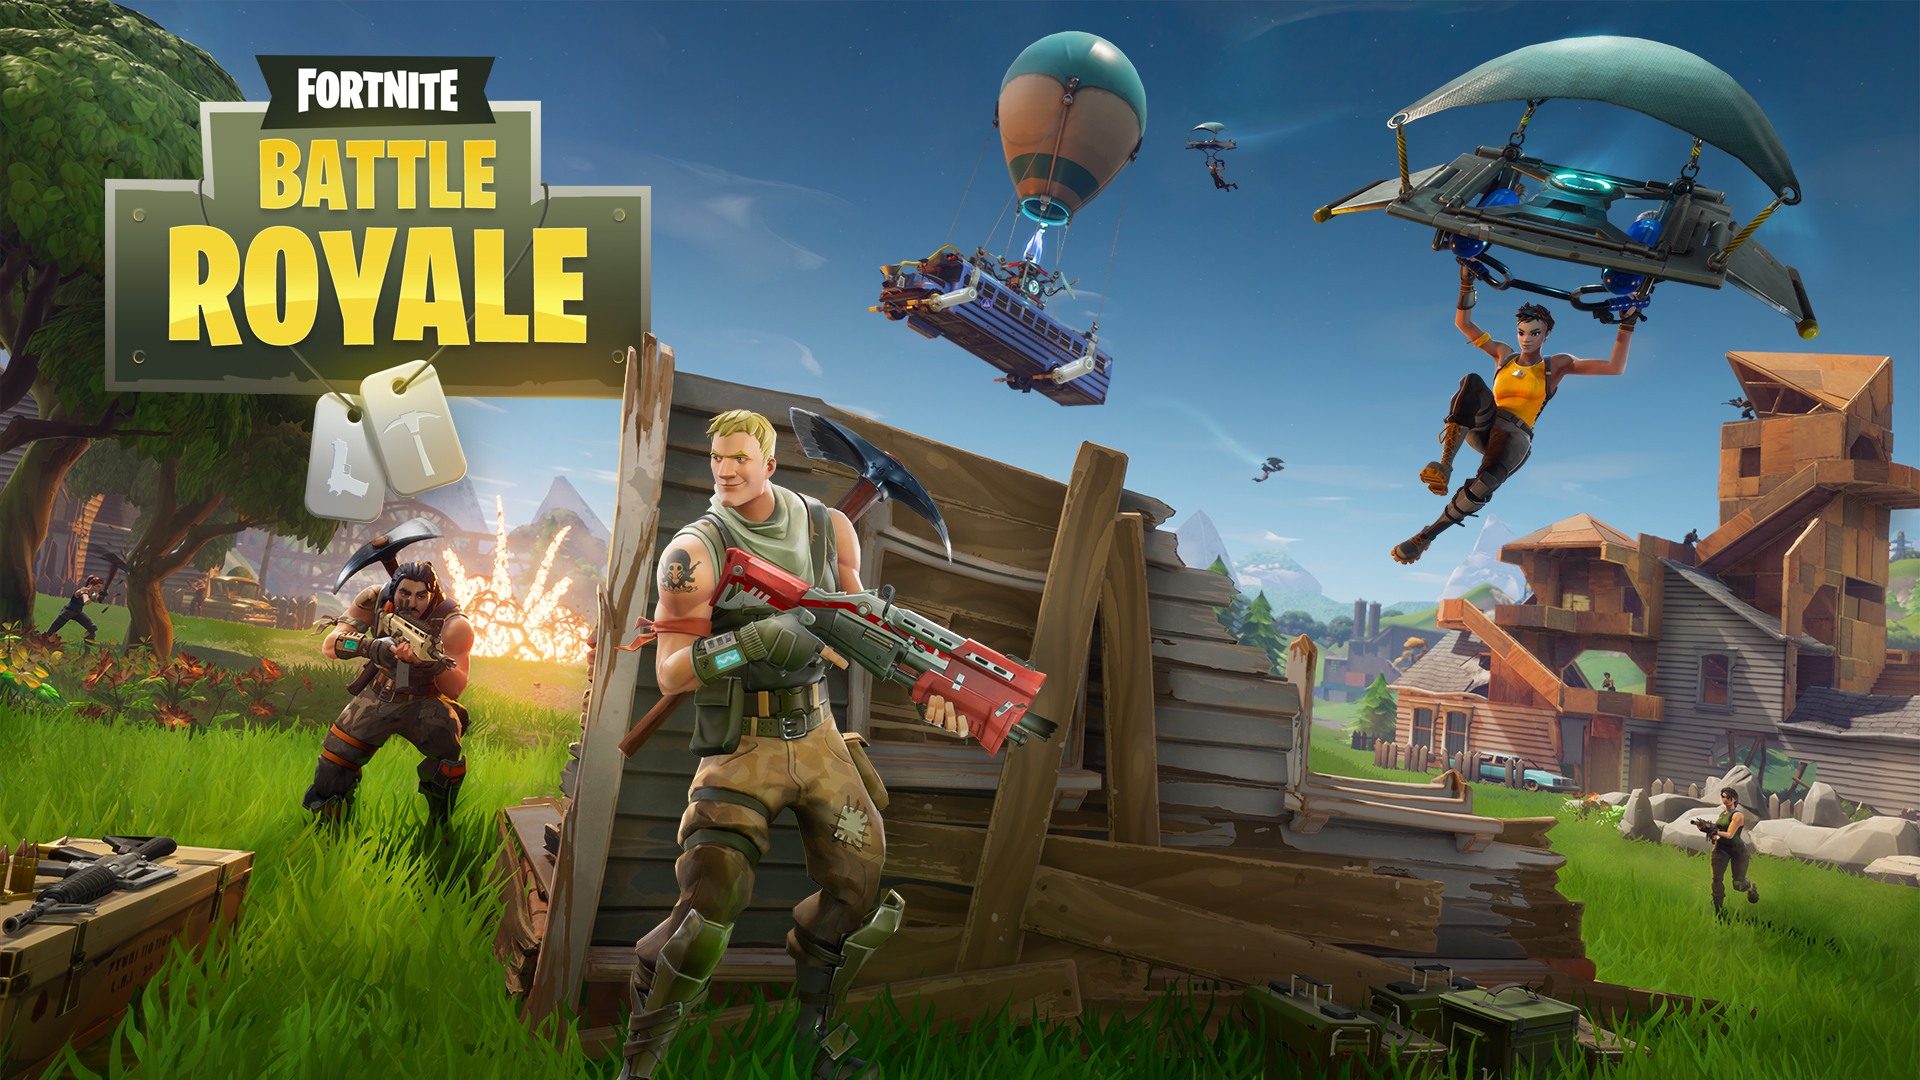 Photo of Fortnite BR is on PUBG's tail, Surpassed 2 million concurrent players